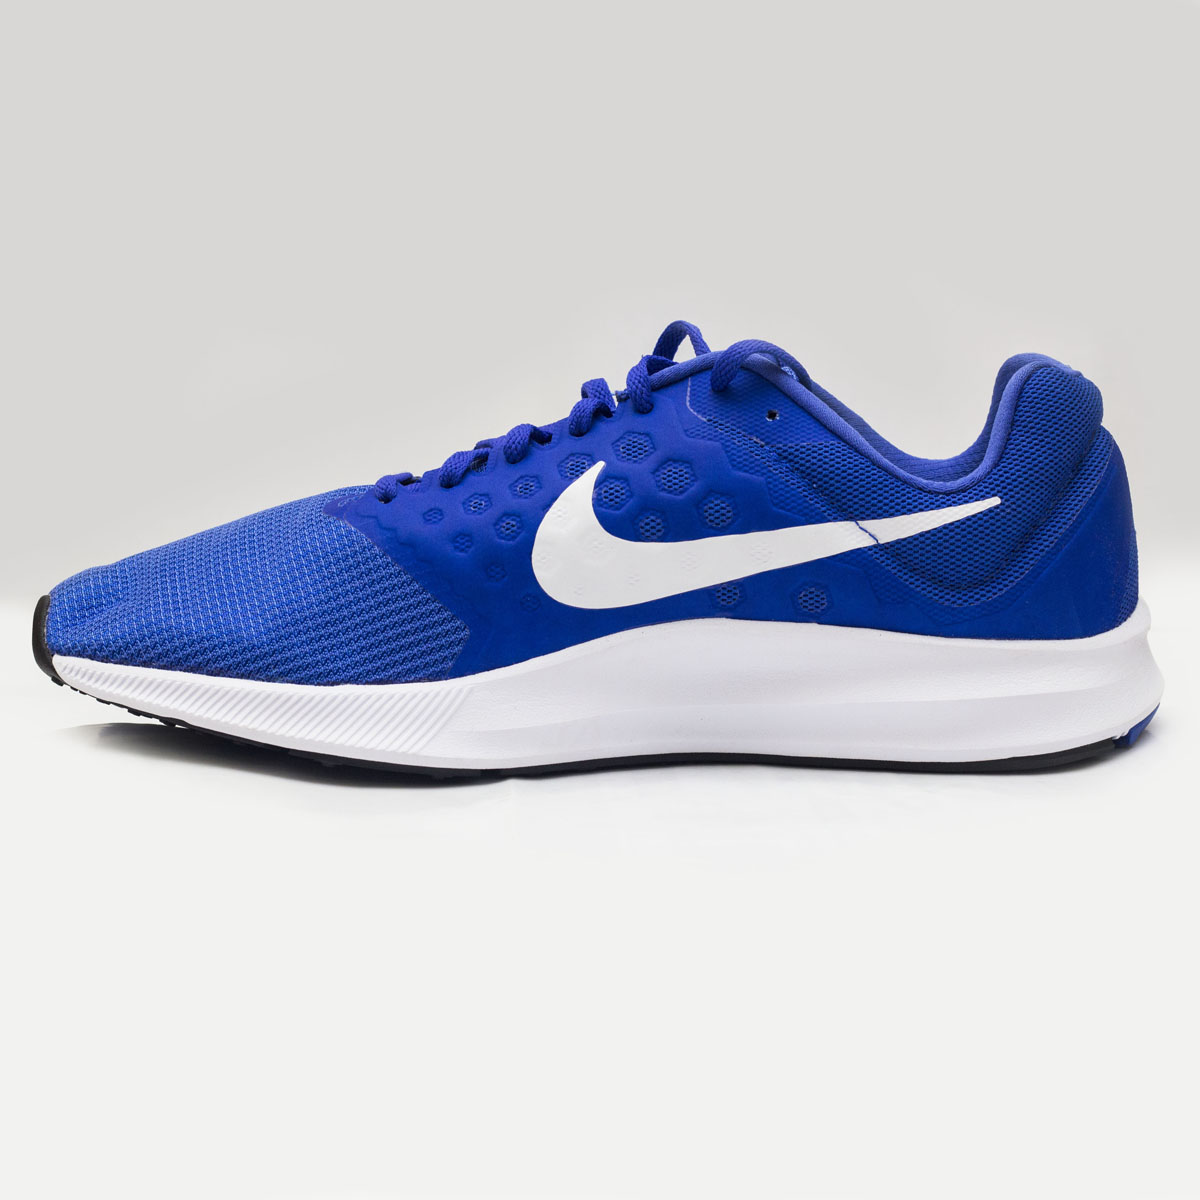 pretty nice f9643 78f3d Nike Downshifter 7 Running Shoes